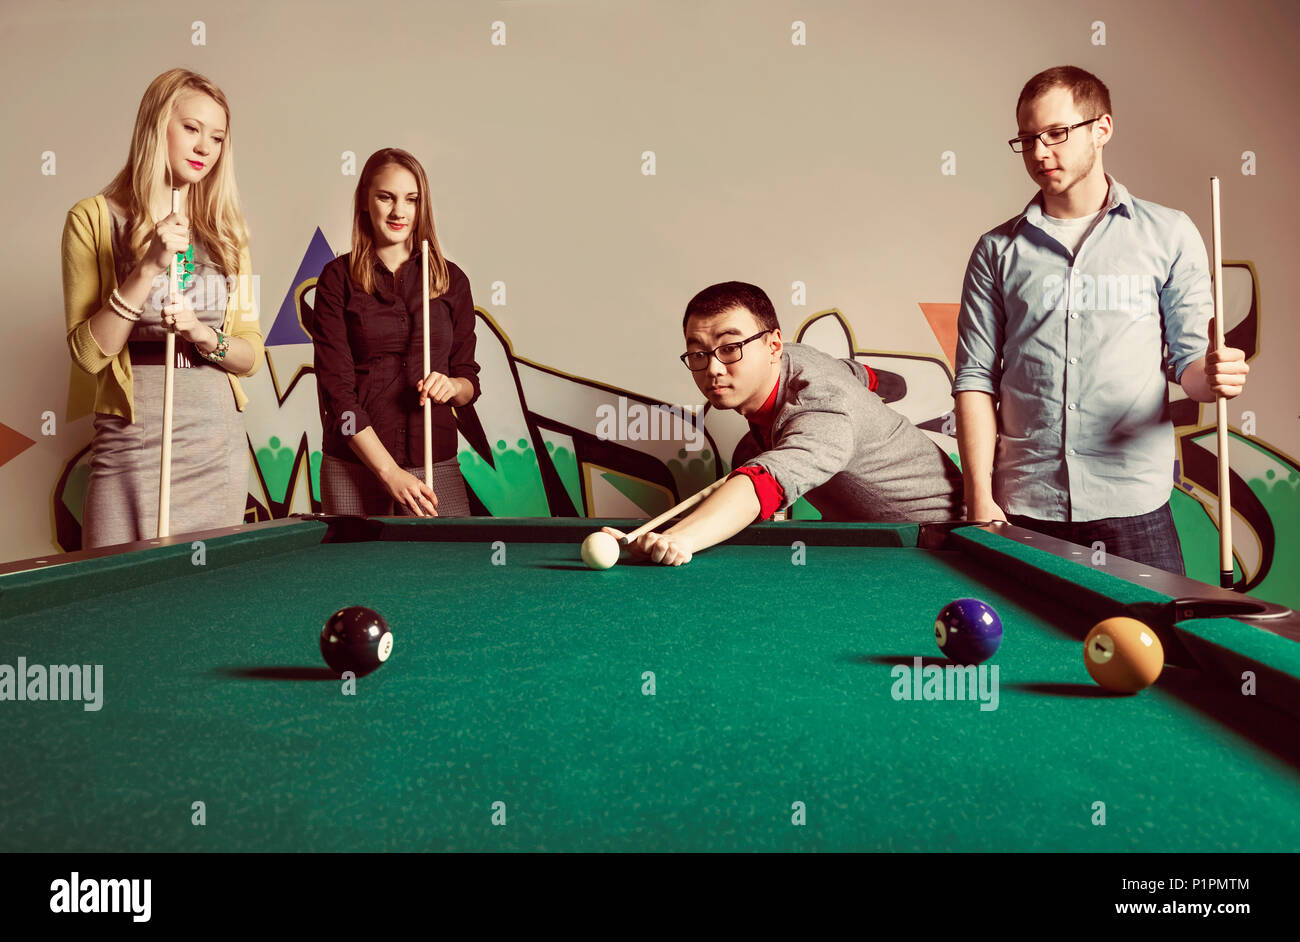 A group of young millennial business professionals playing a game of pool together on a work break; Sherwood Park, Alberta, Canada - Stock Image